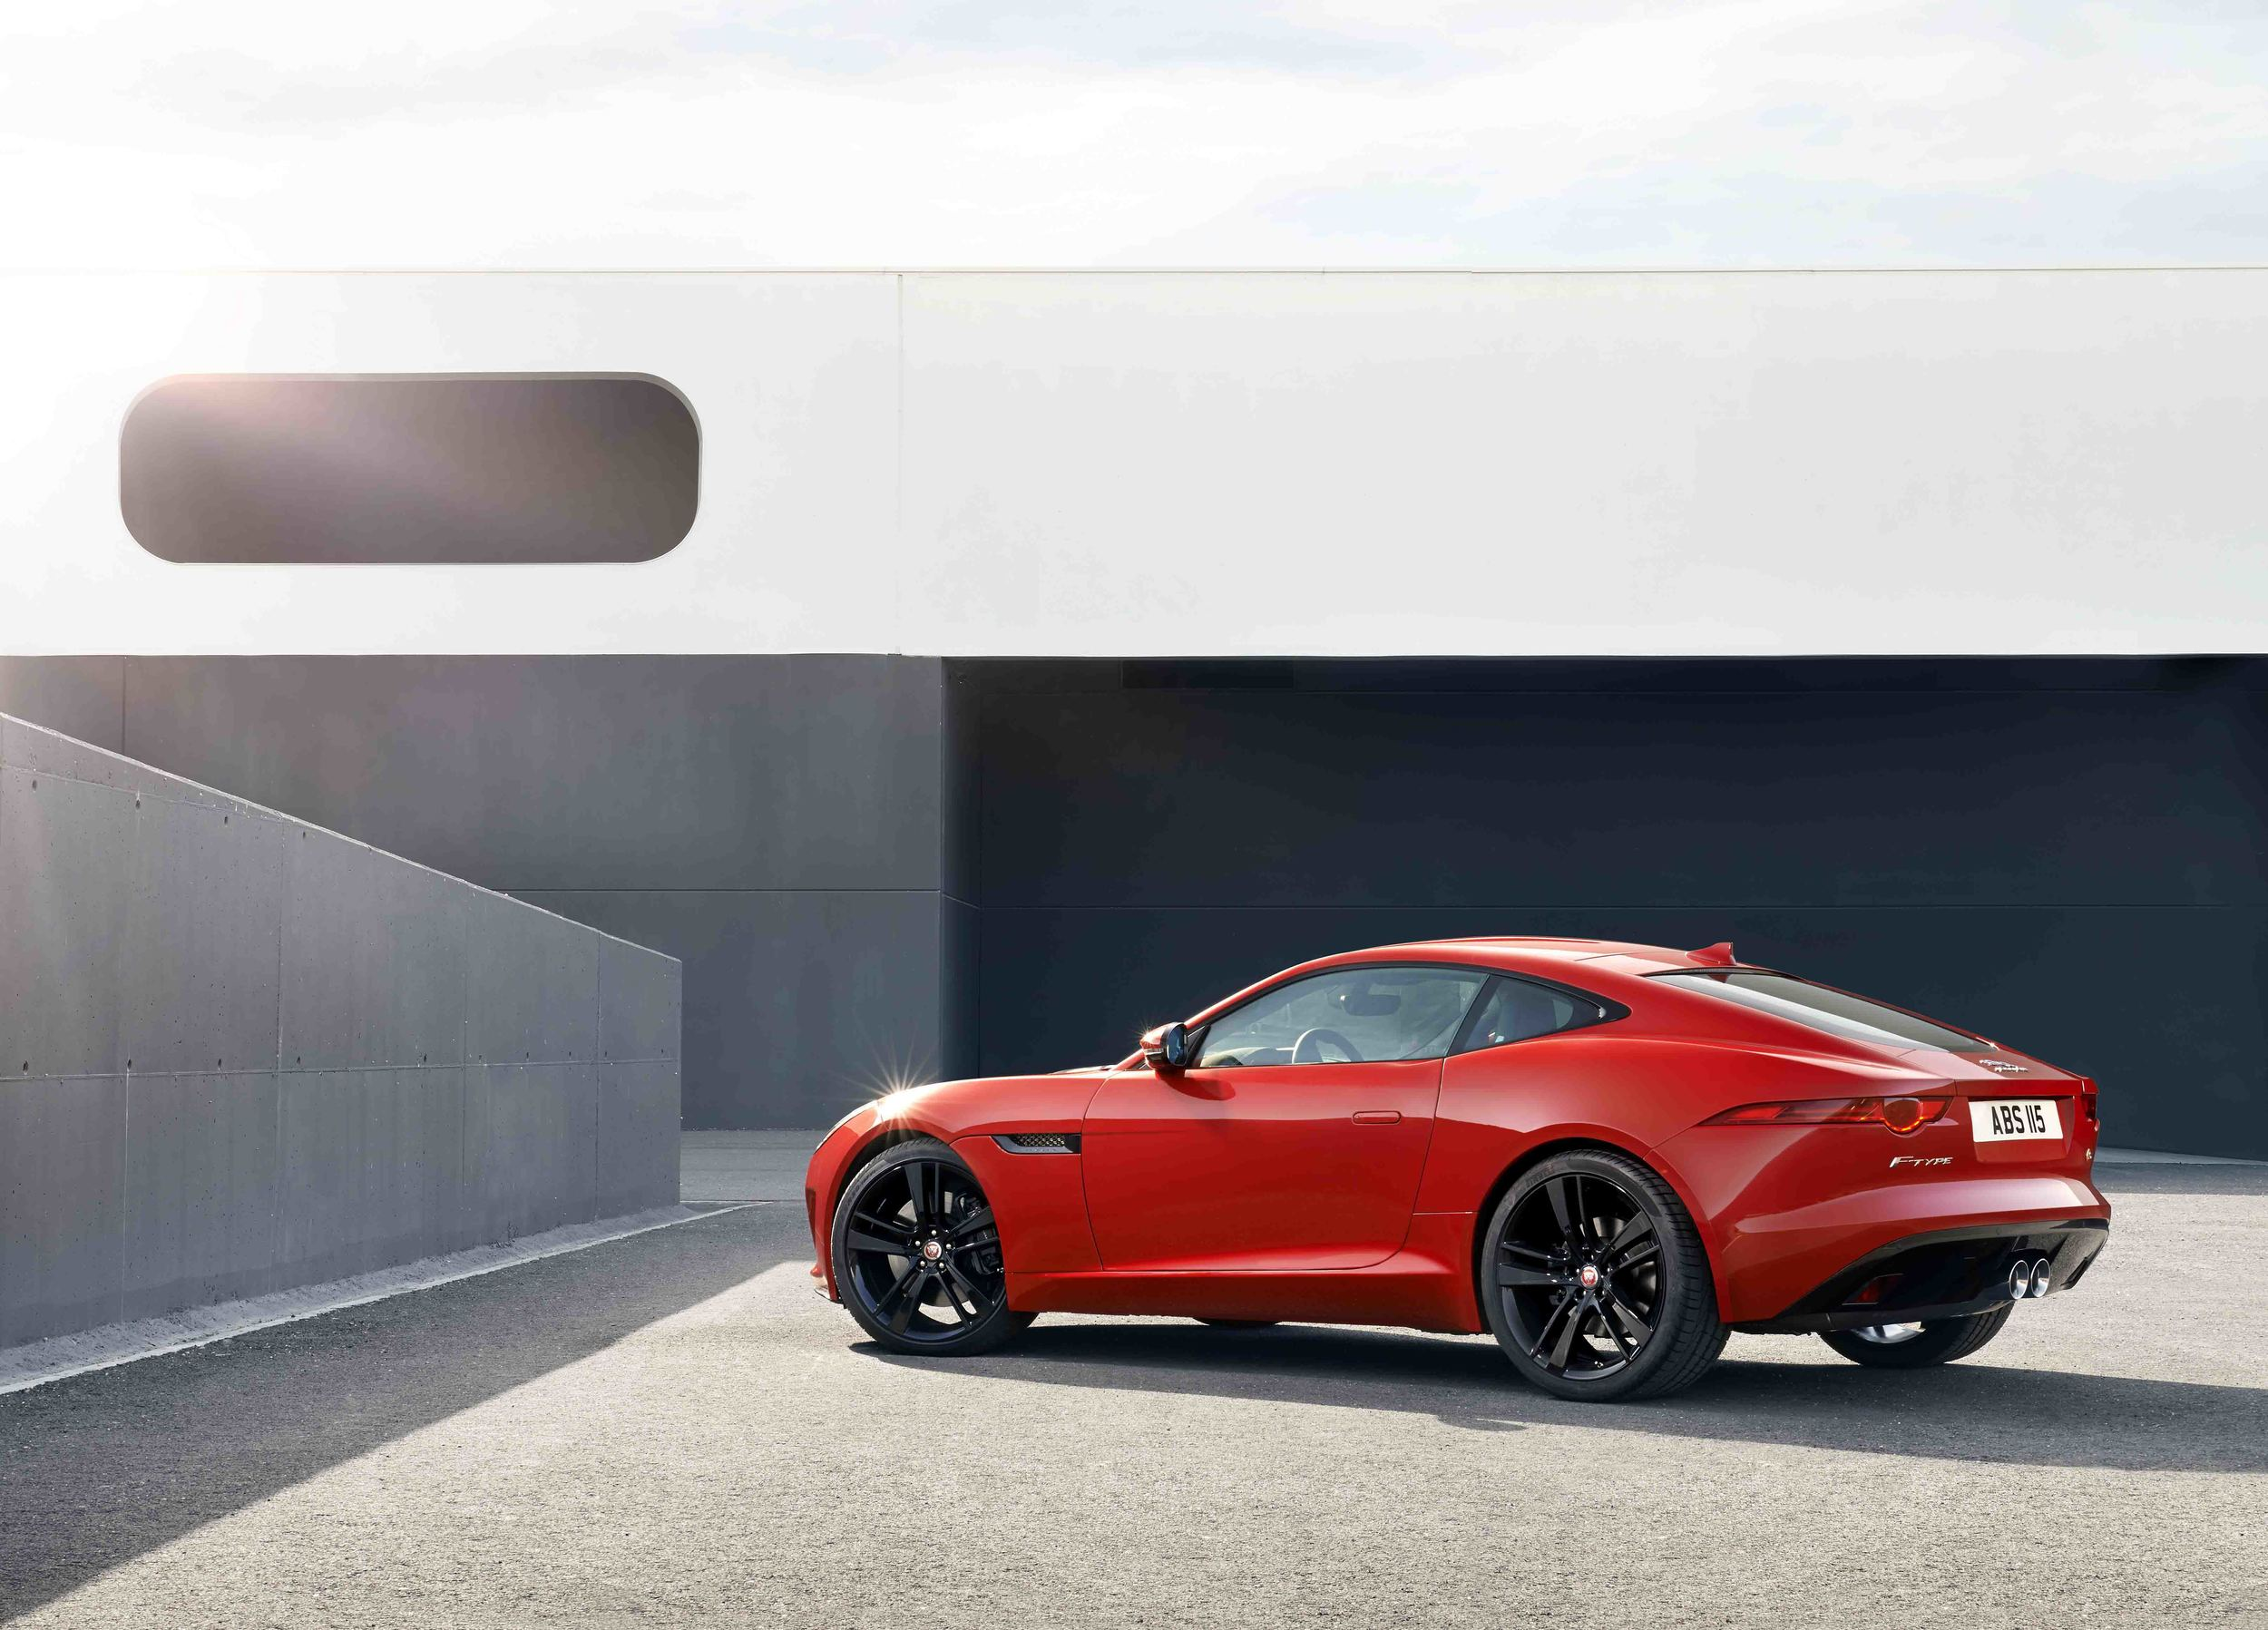 The new Jaguar F-Type Coupe